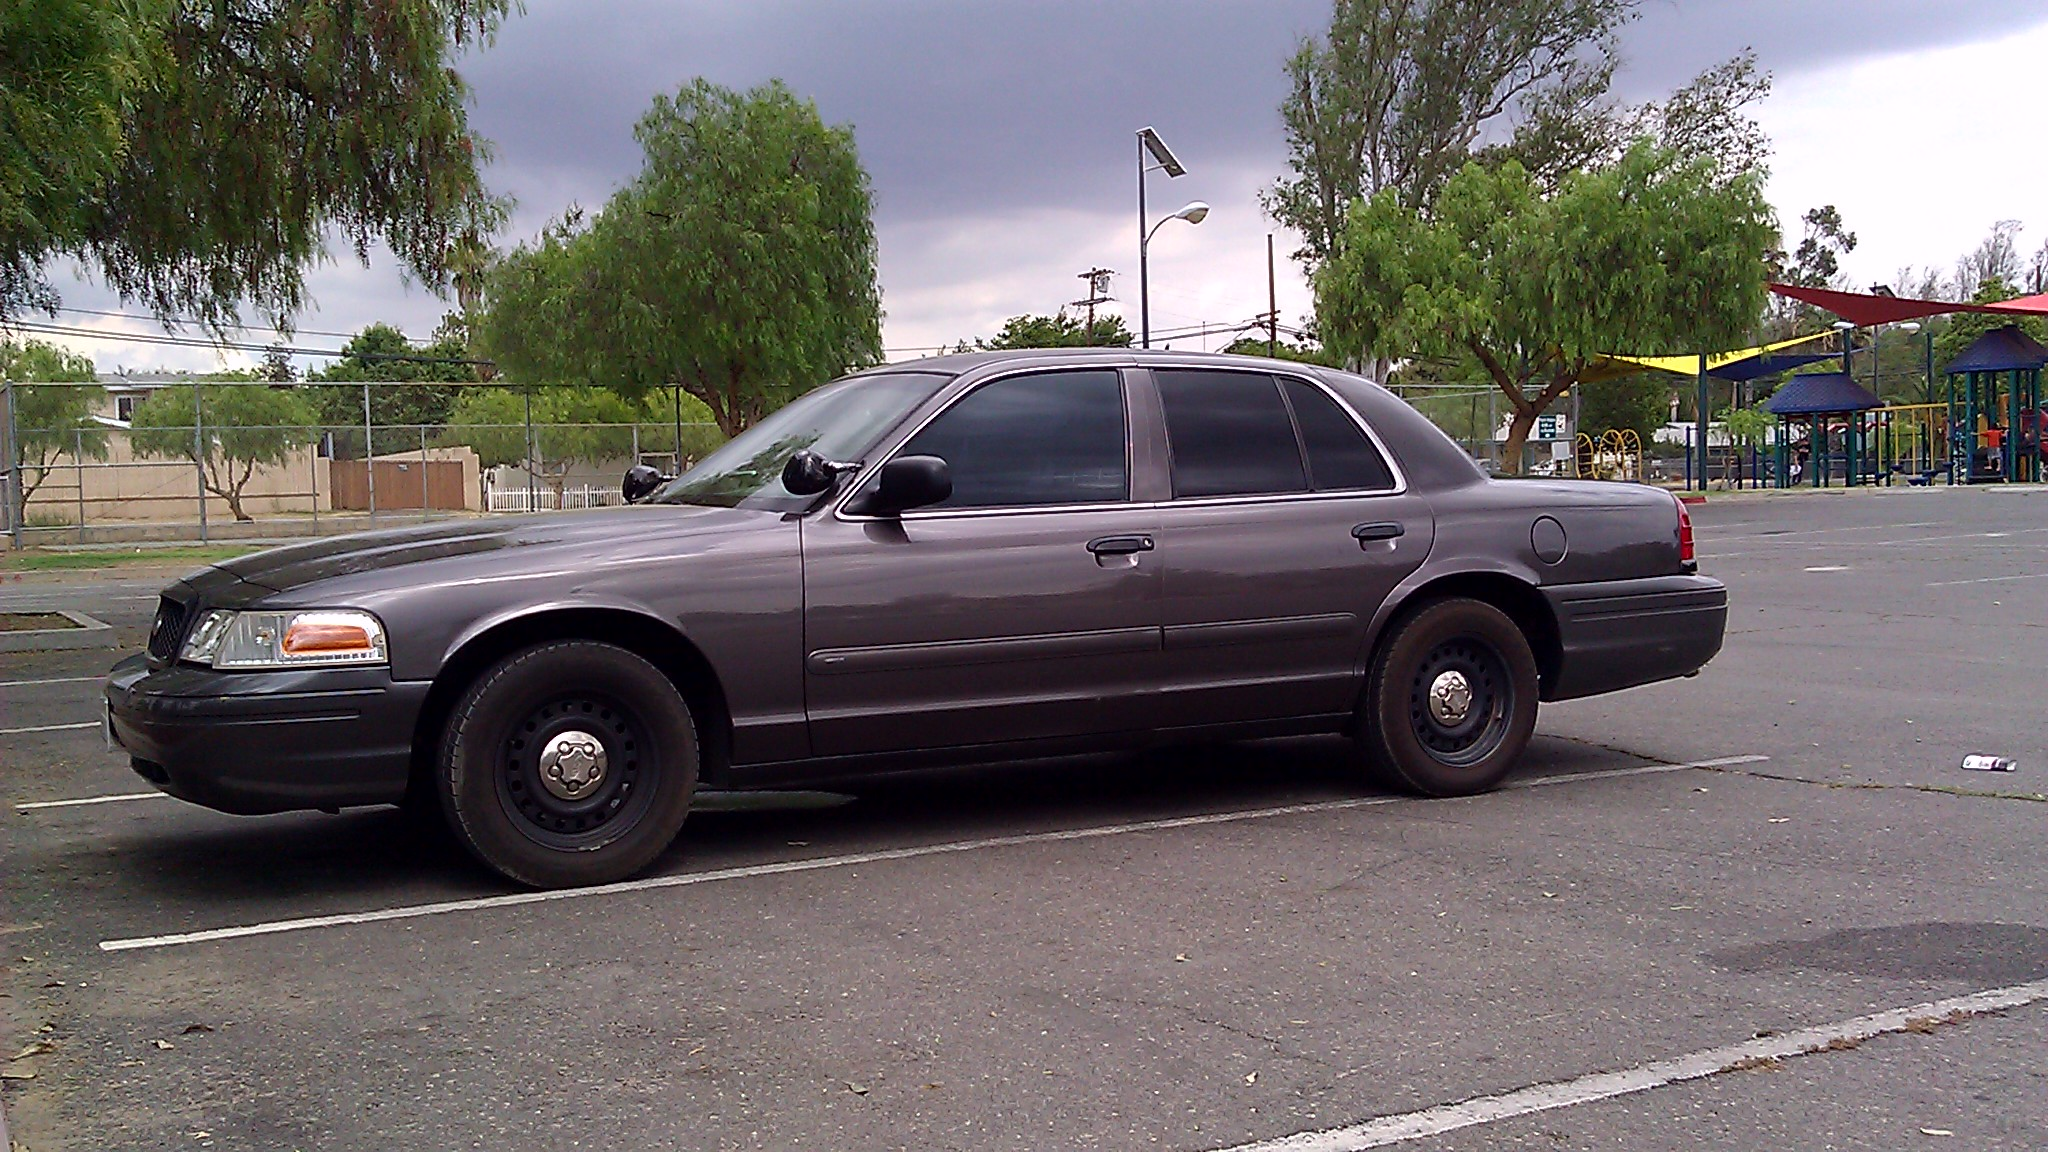 RE: Ford Crown Victoria P71